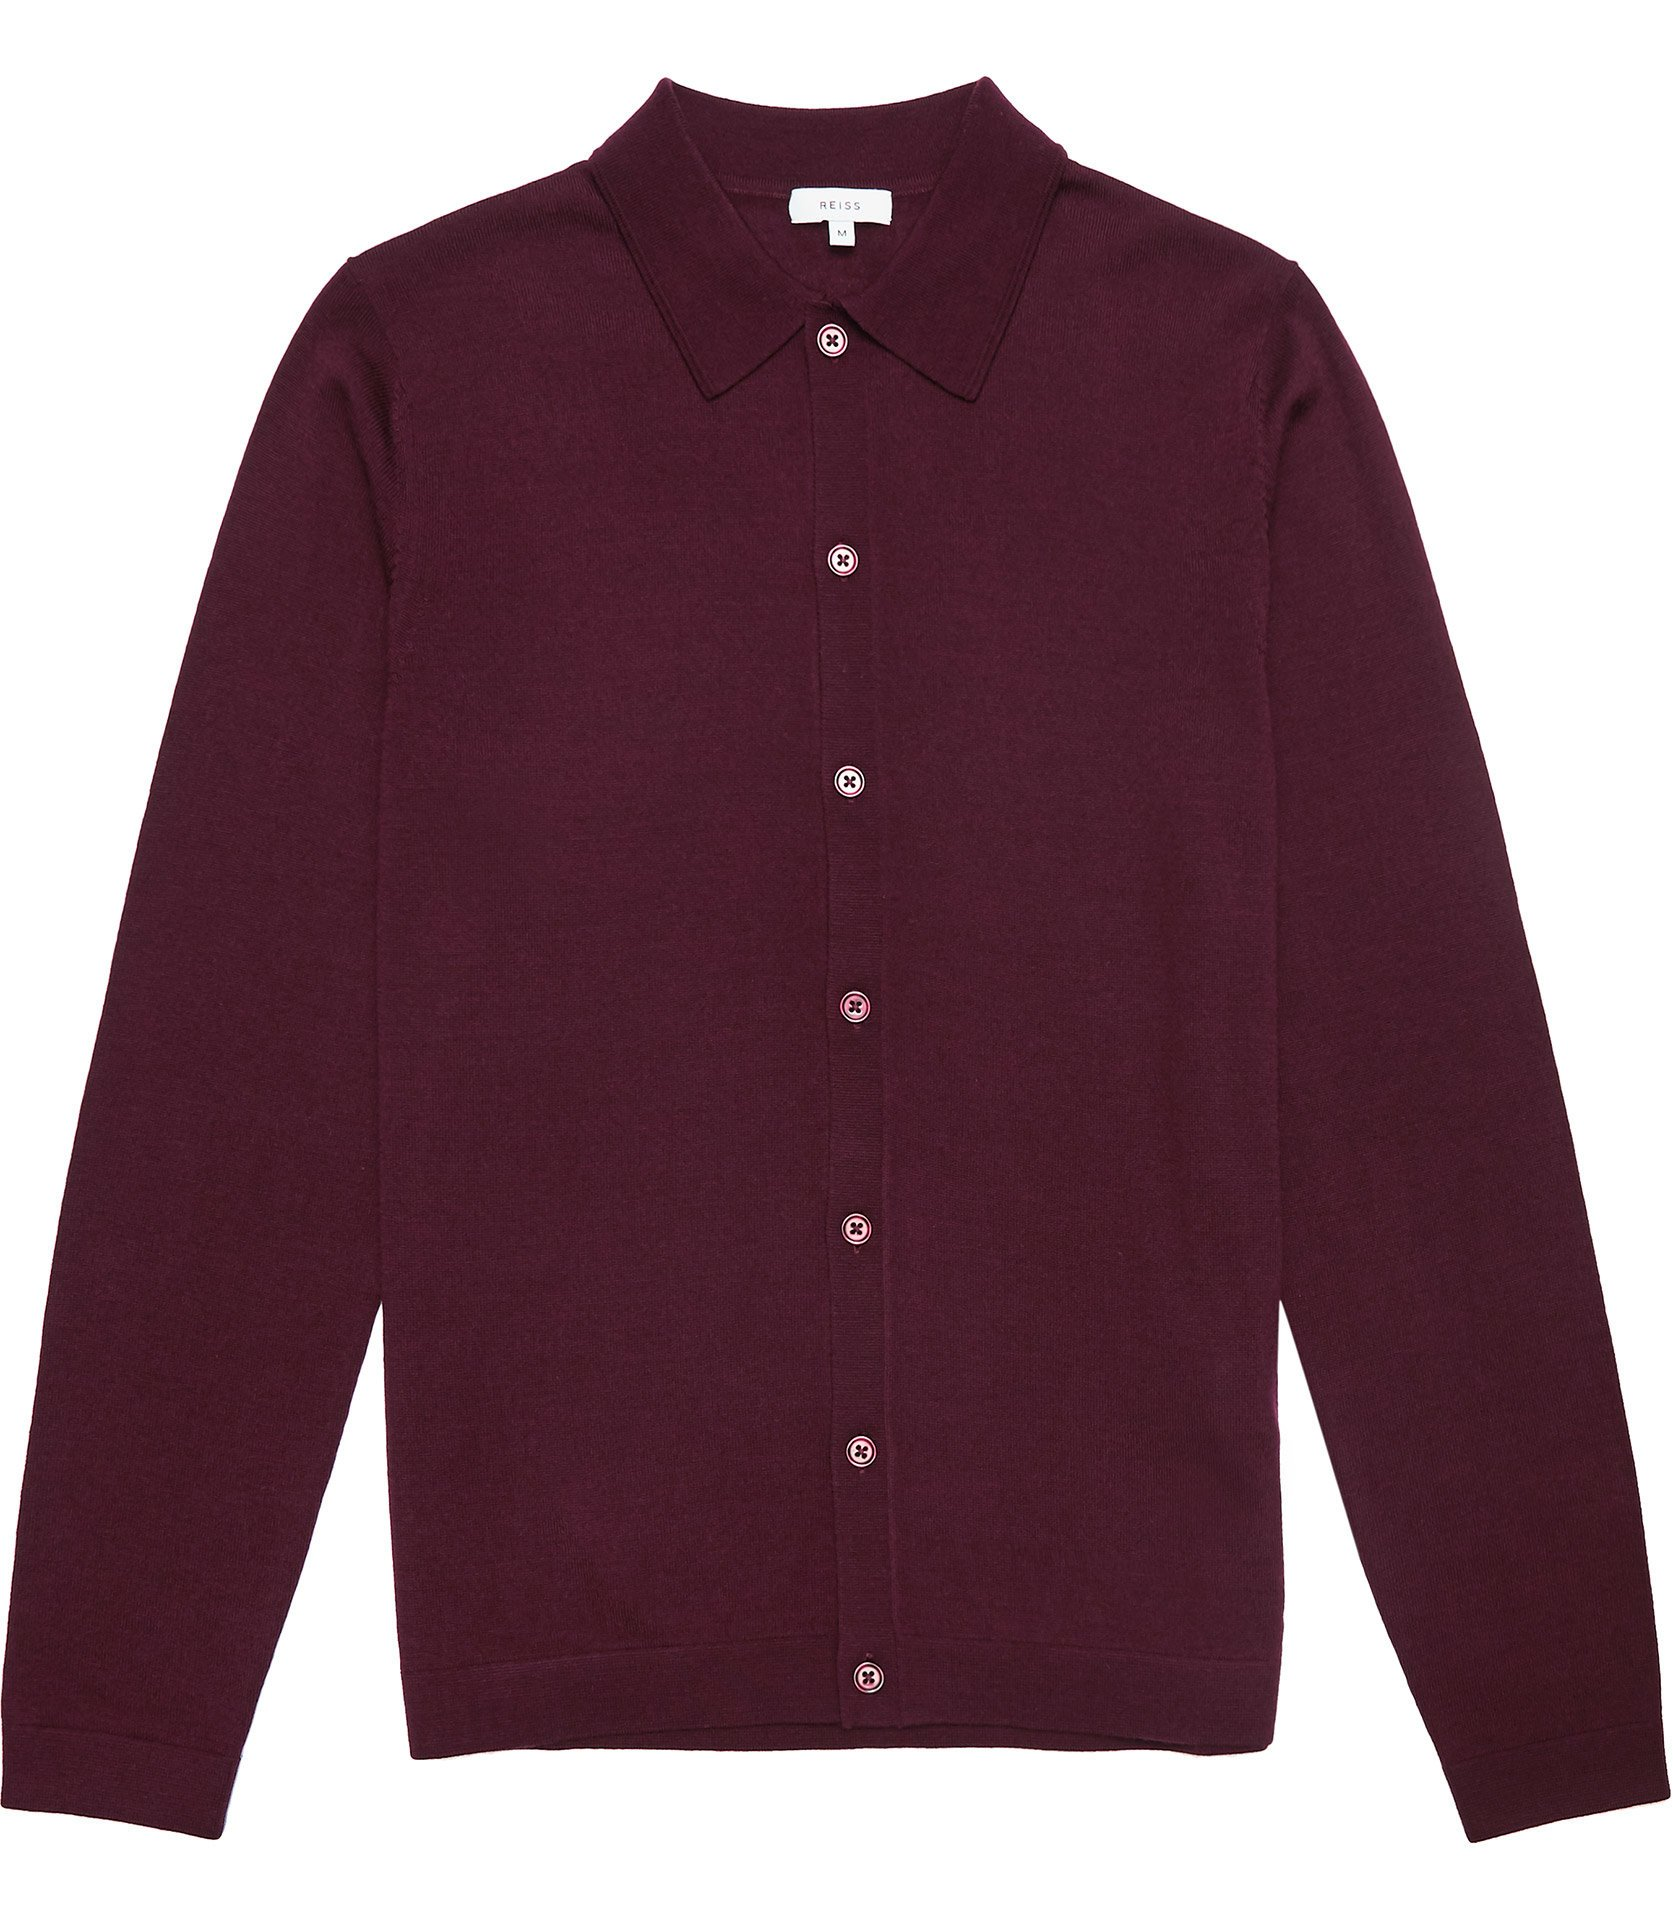 Reiss Bordeaux Merino Wool Polo Shirt